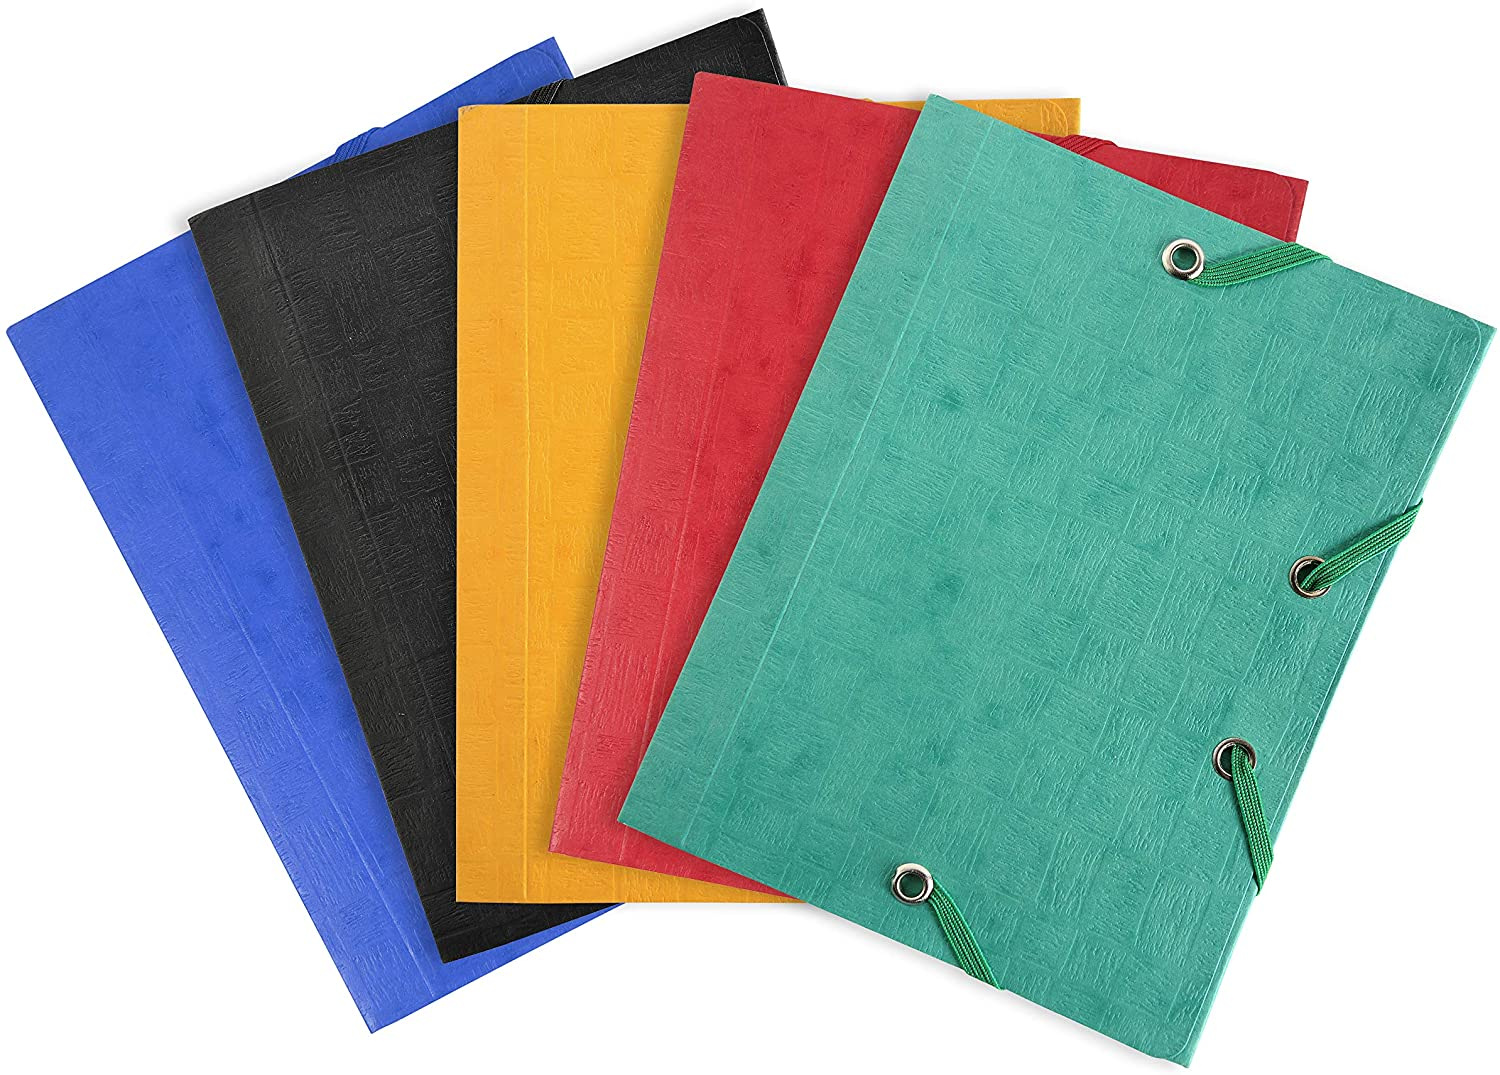 Exacompta - Ref. 50750E - Pack of 25 Elastic folders 3 Flaps Glossy Card 425 GSM - Pocket Size - 12x16cm - Assorted Colours